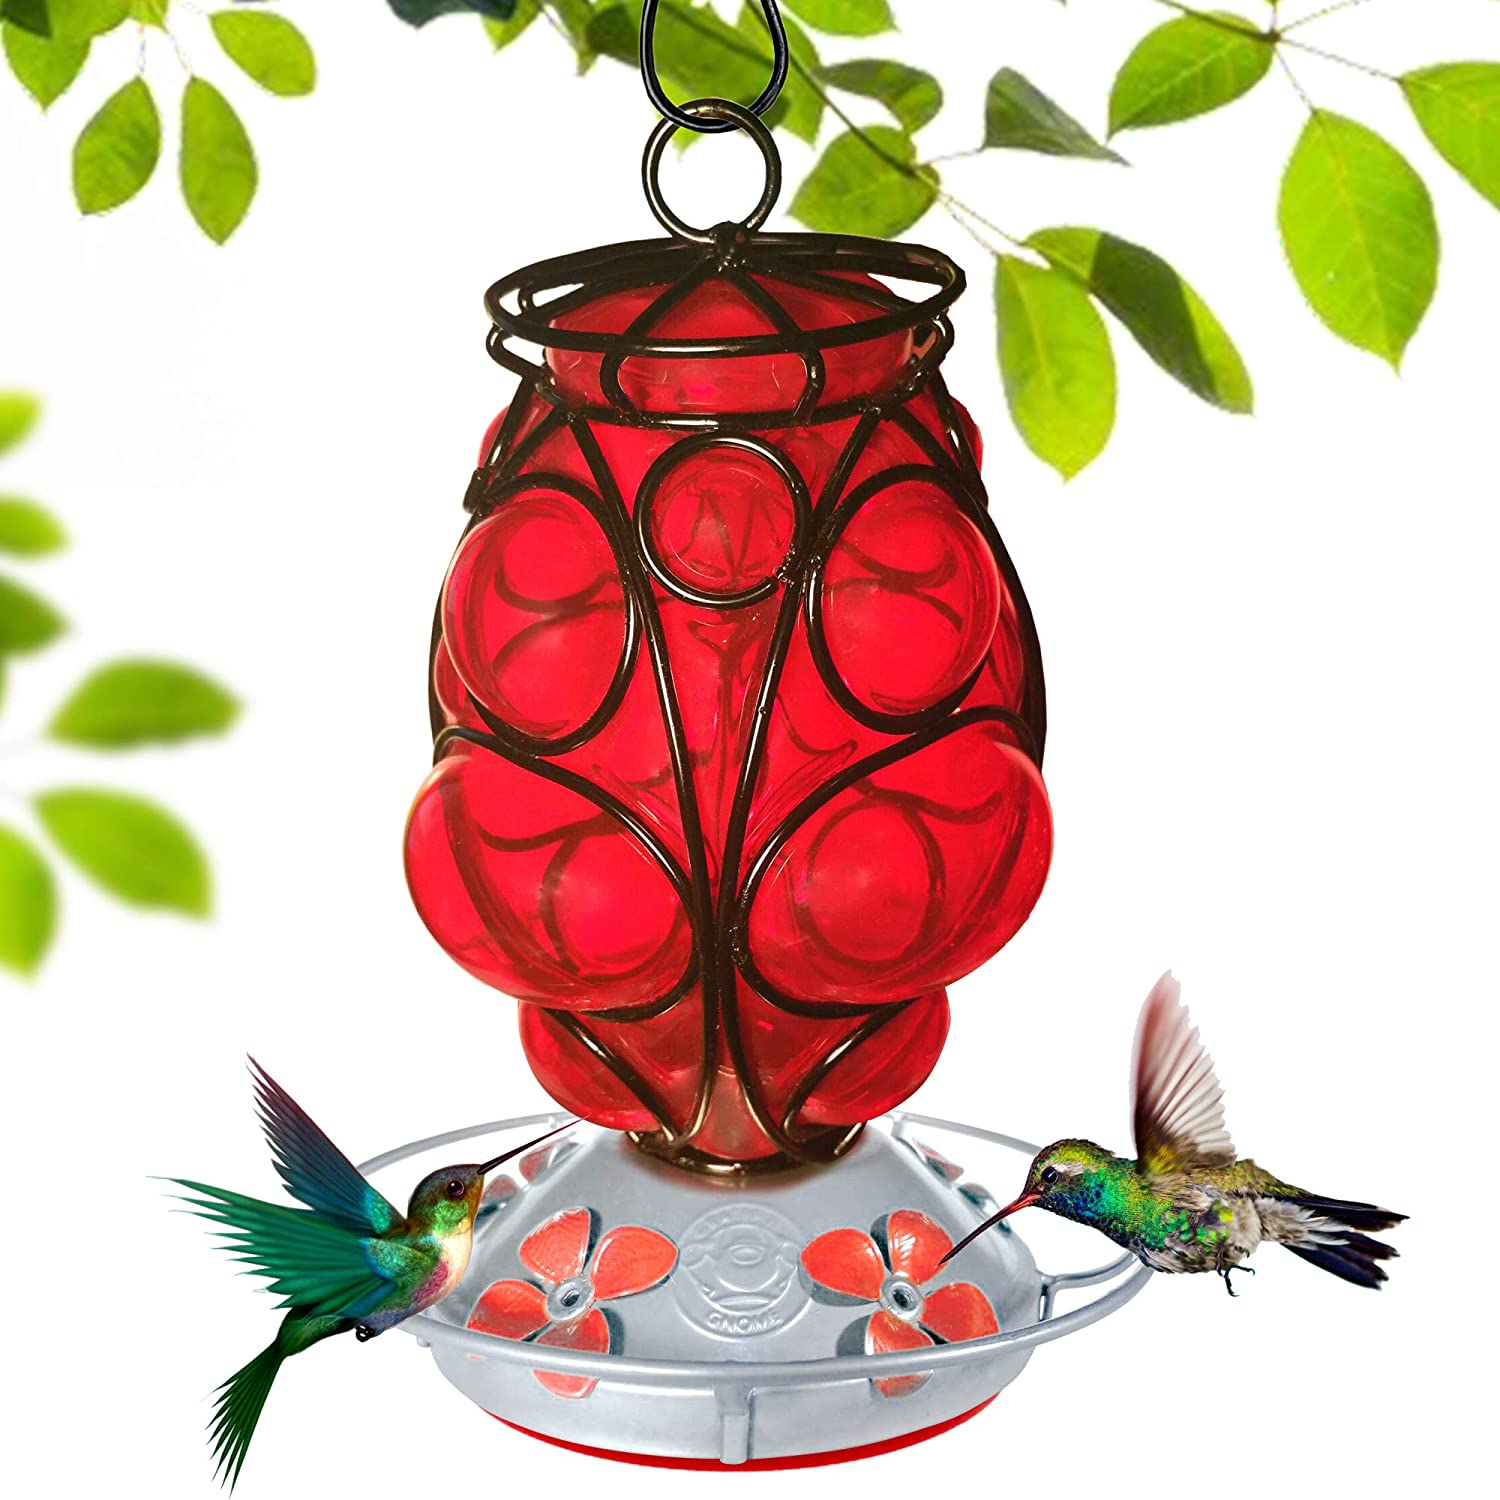 Grateful Gnome - Hummingbird Feeder - Hand Blown Glass - Moroccan Lantern - 28 Fluid Ounces Free Bonus Accessories S-Hook, Ant Moat, Brush and Hemp Rope Included